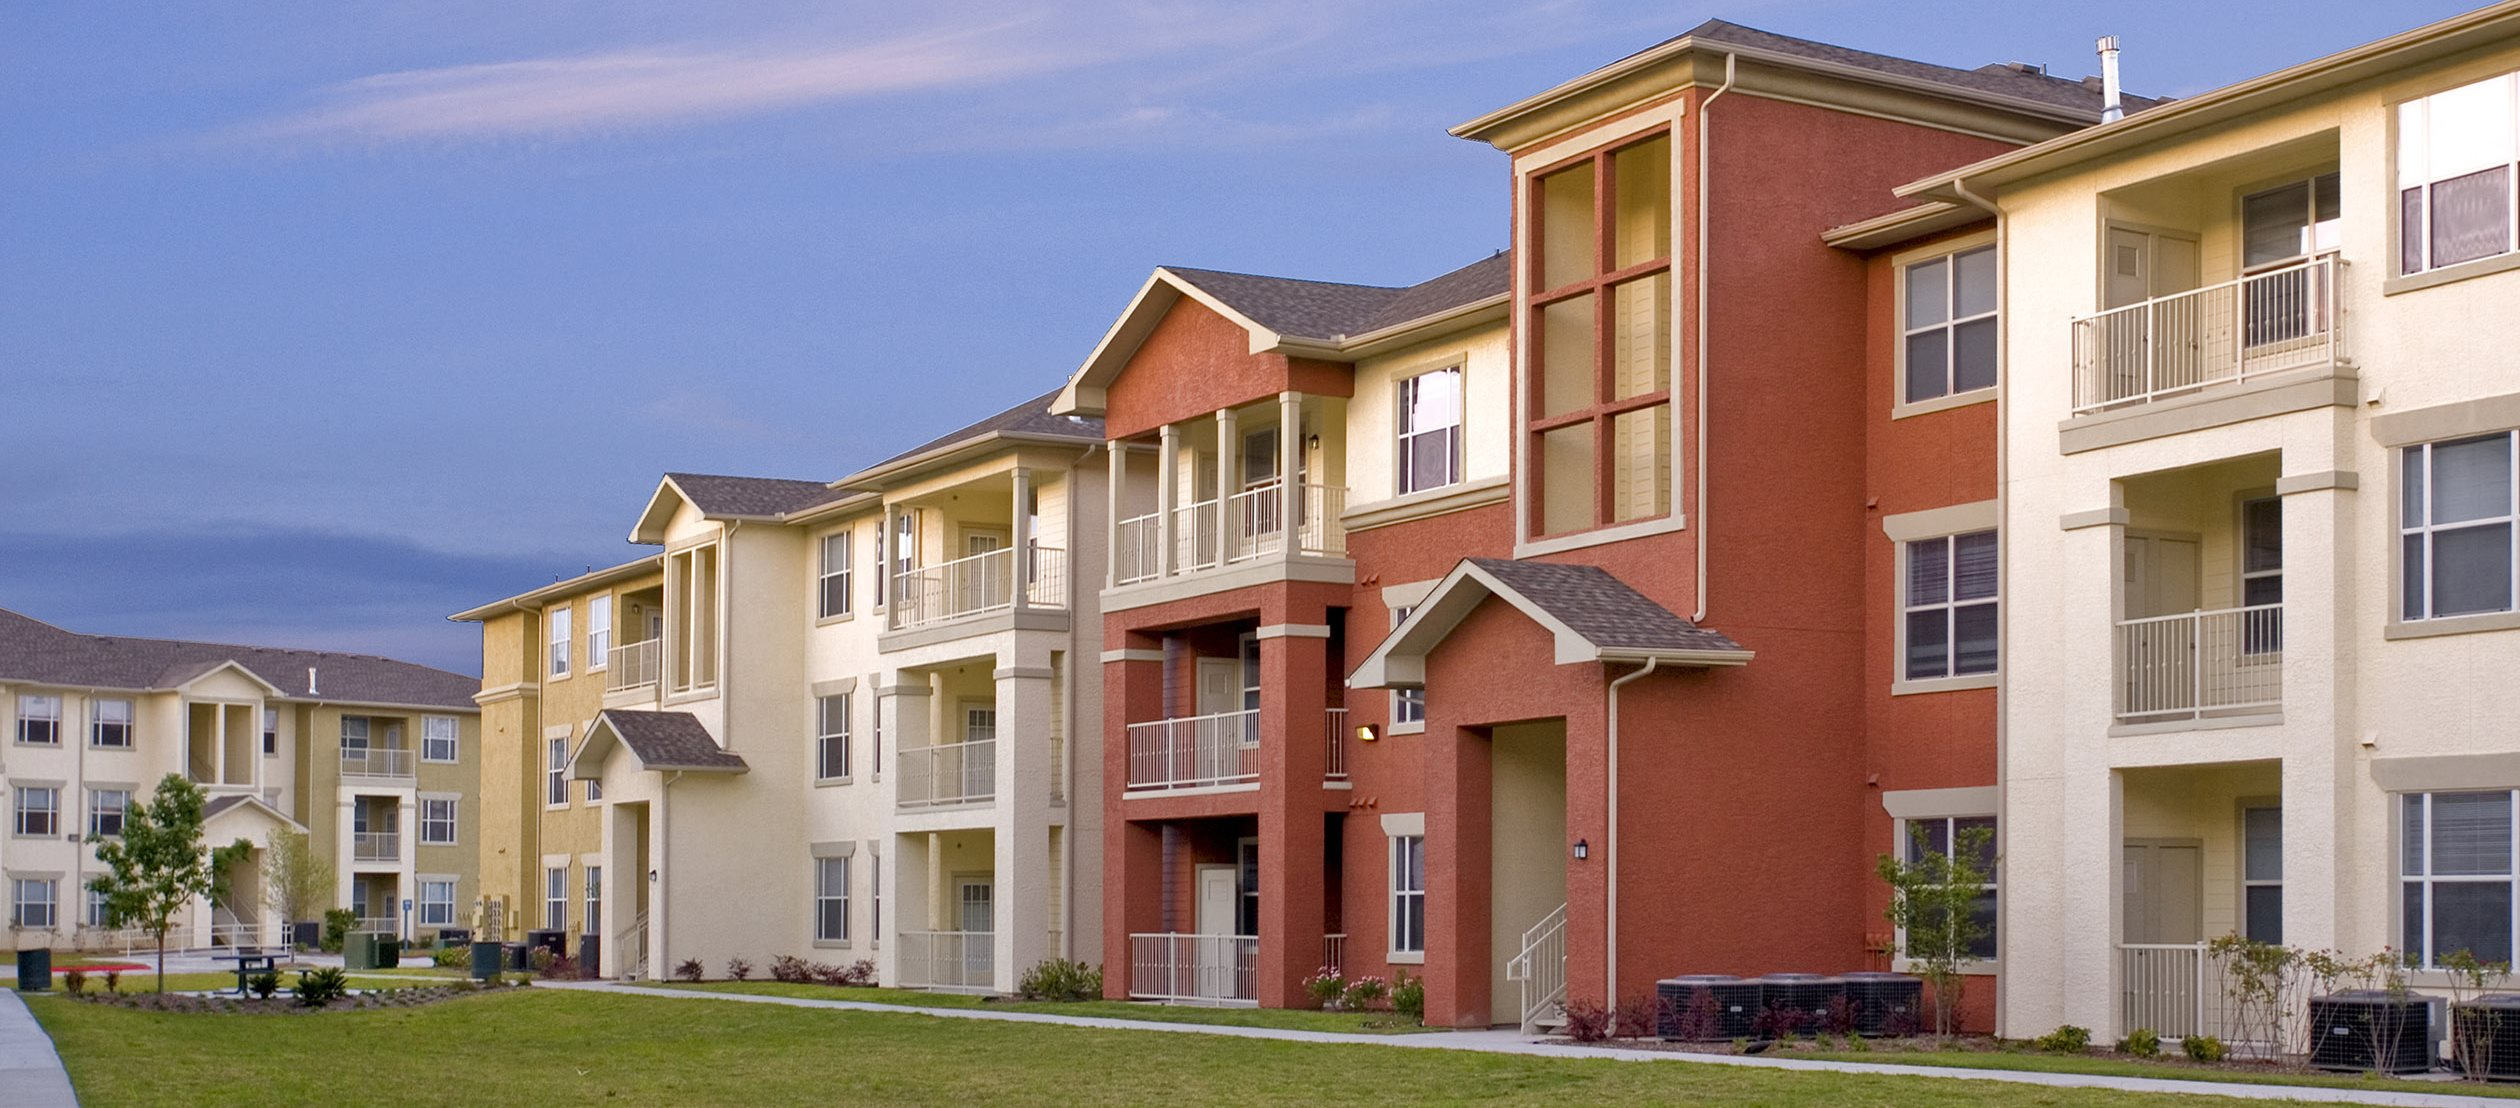 Cheap 2 Bedroom Apartments Houston Tx Affordable Apartments In Houston Tx Villa Springs